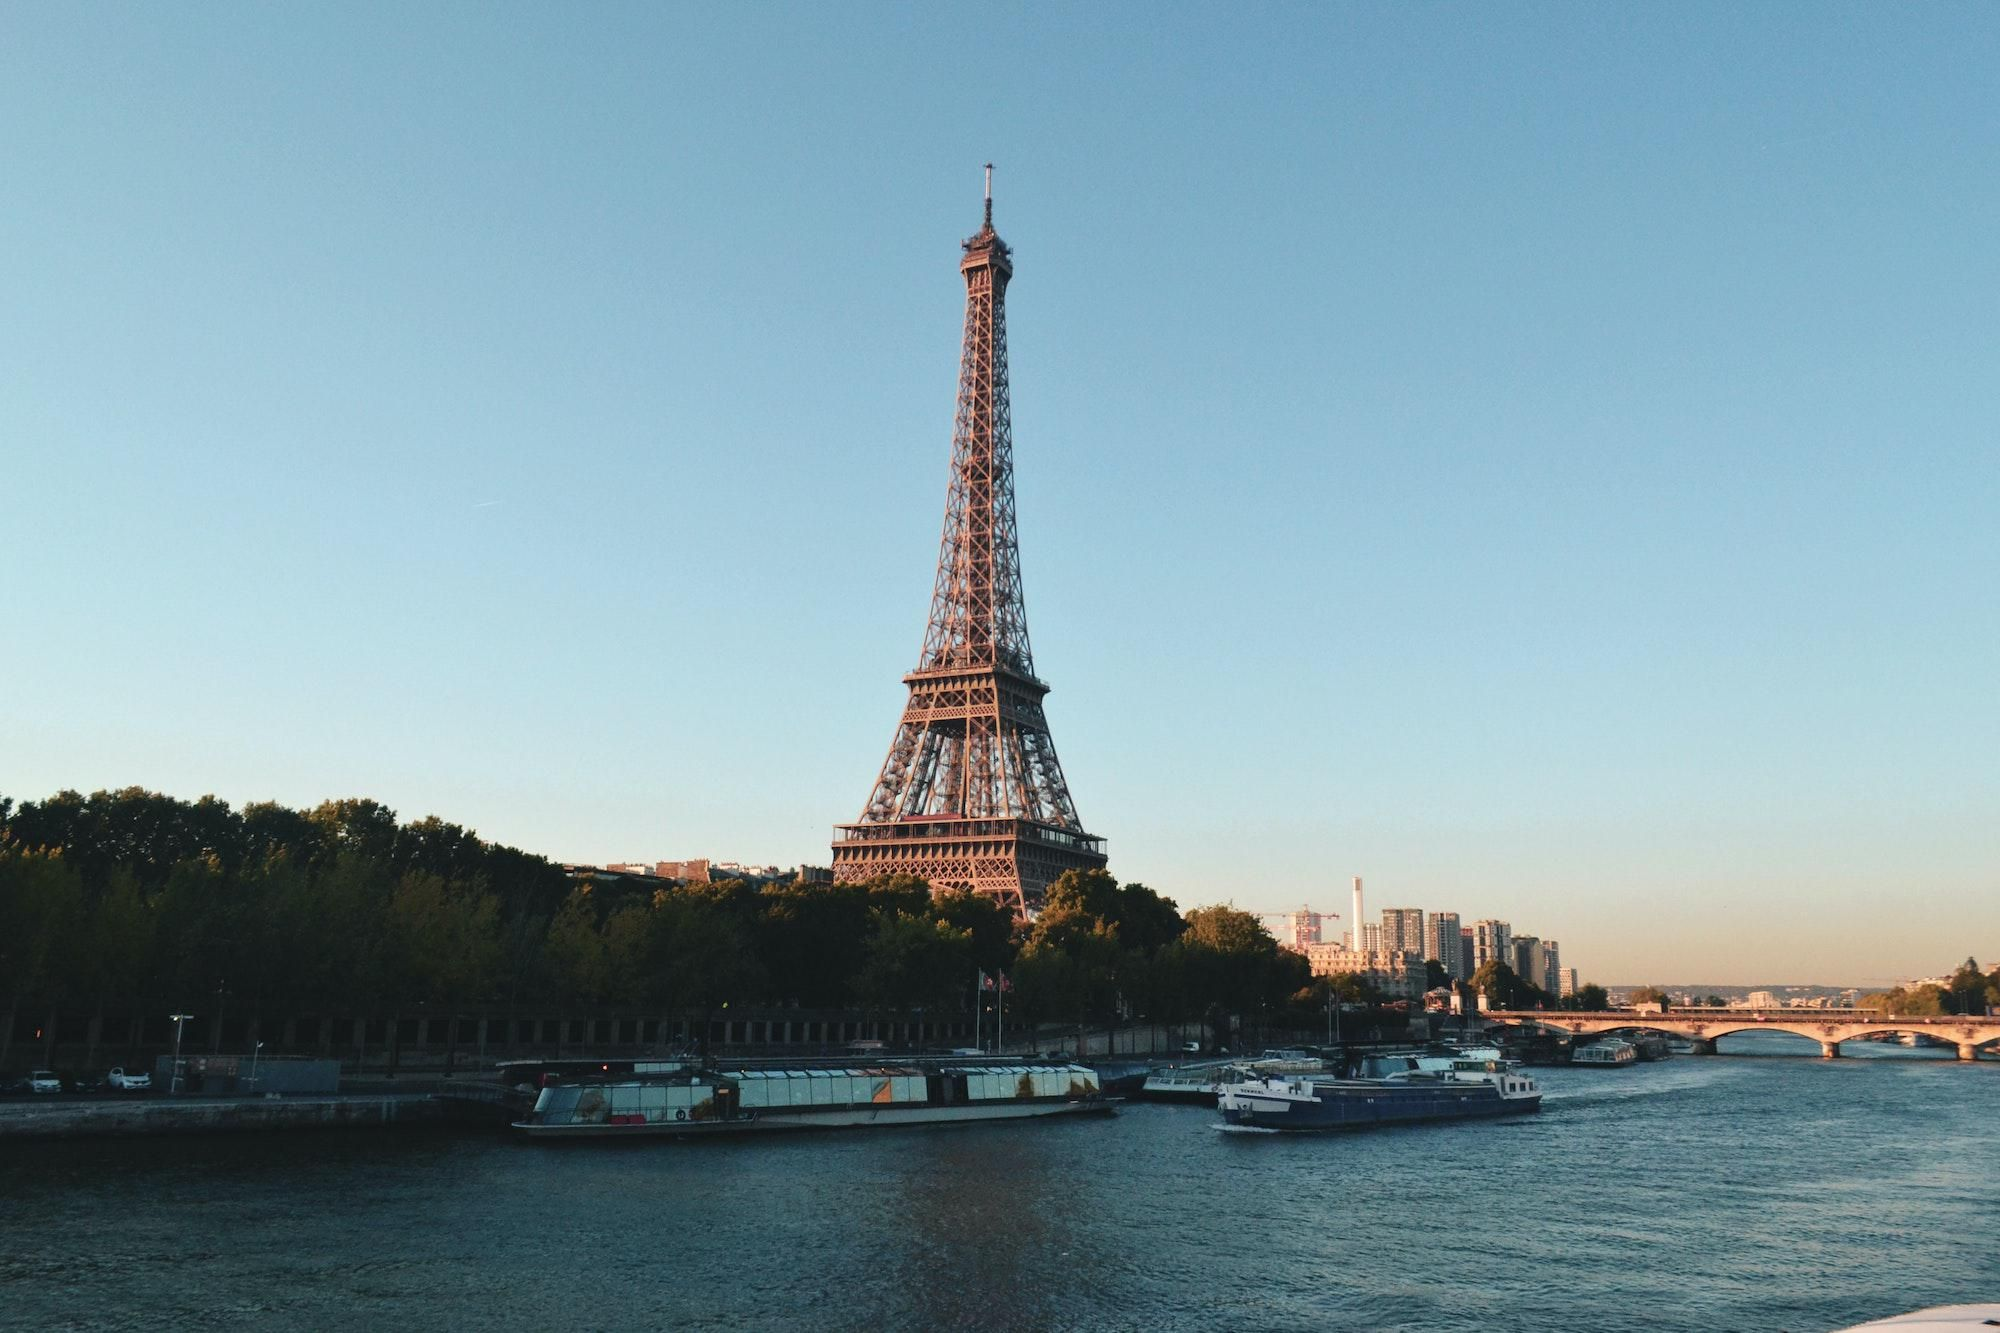 Traveling To Europe This Year? Be Sure To Keep These Tips In Mind